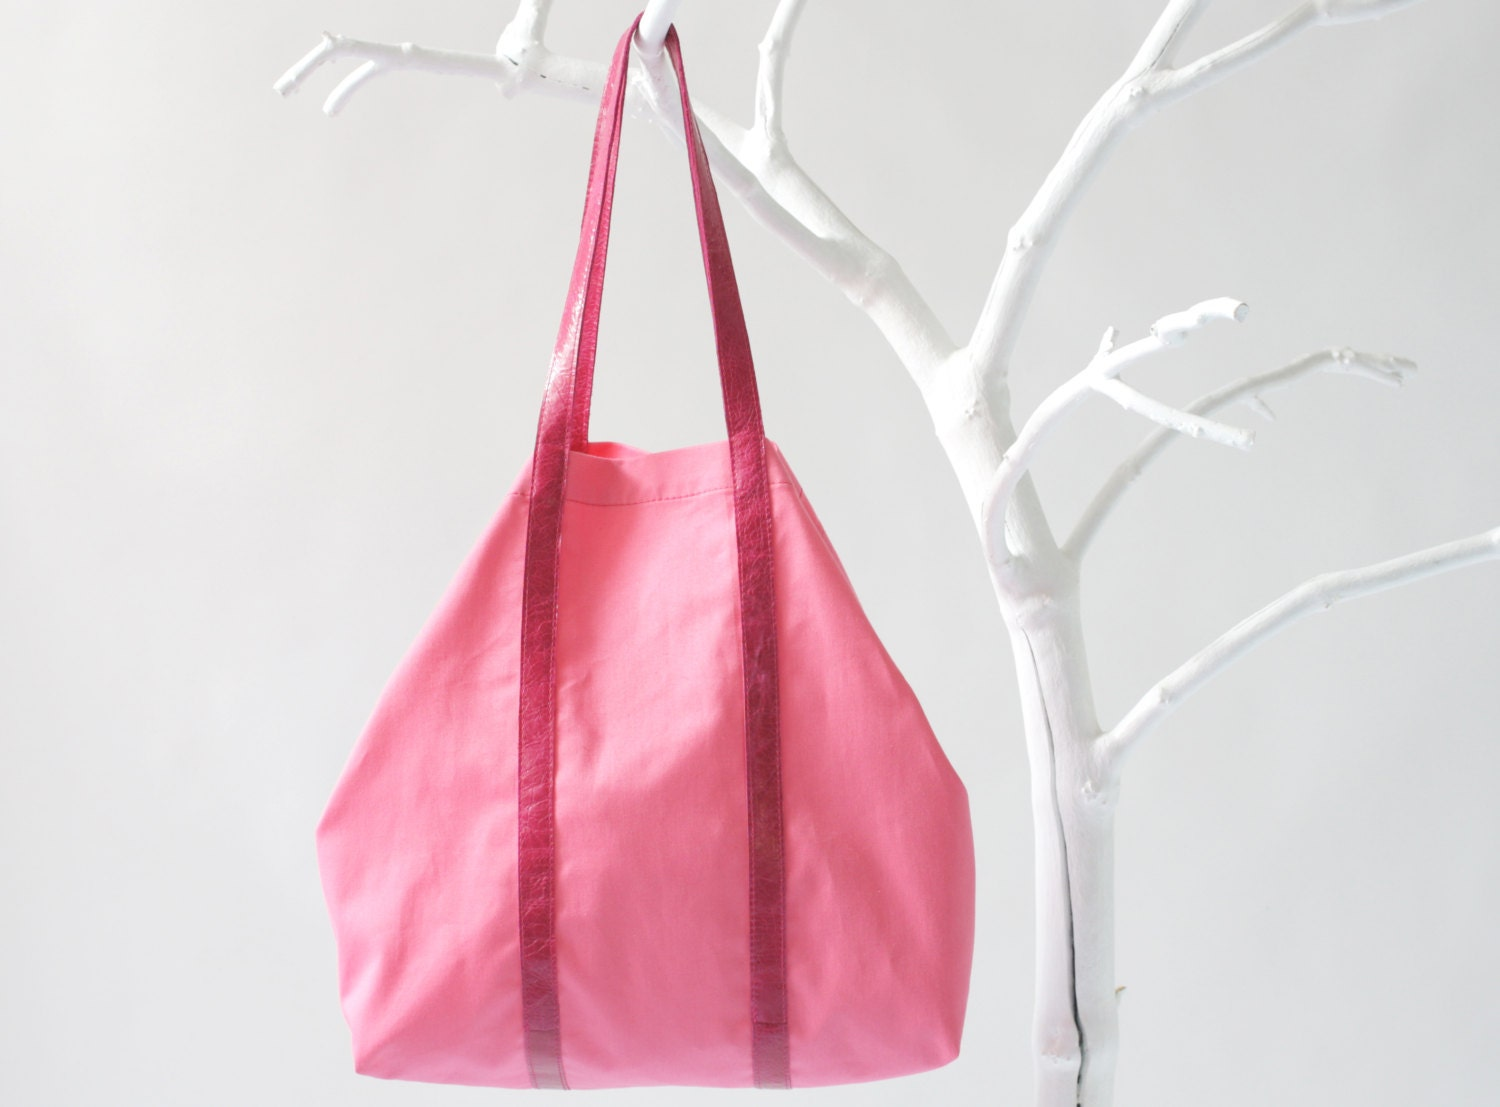 Cotton Shopper in Vibrant Pink with Twin Top Handels in Fuchsia, tote bag, shoulder bag, beach bag - alexbender